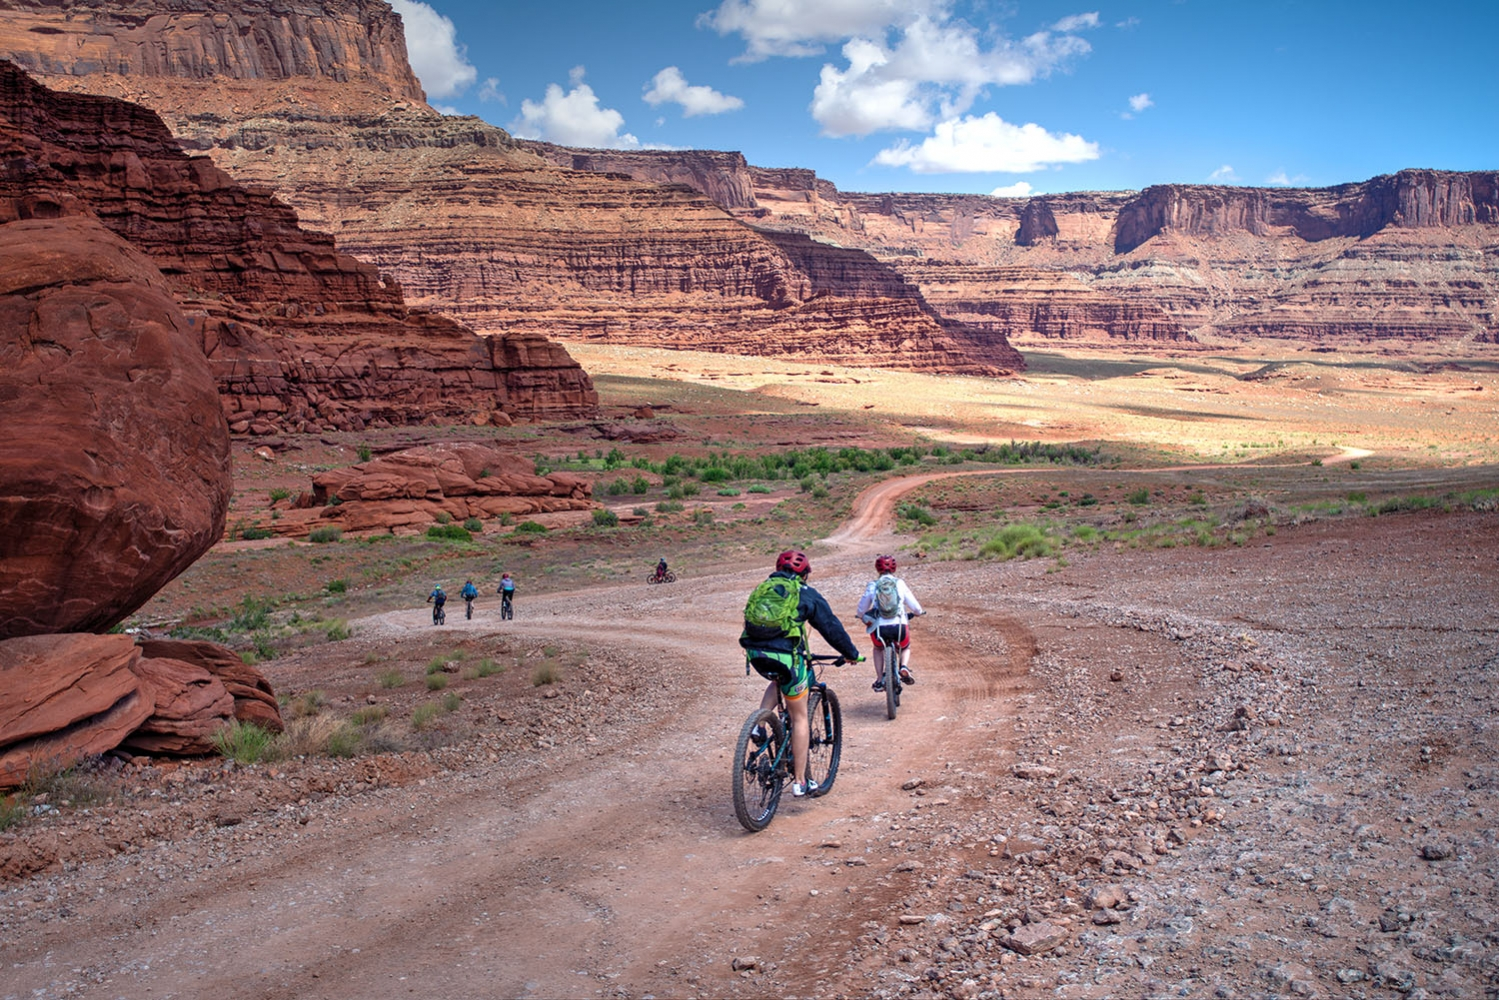 Canyonlands-National-Park-Full-Day-Guided-Mtb-Tour-Down-From-Lunch-Down-The-Hill-1